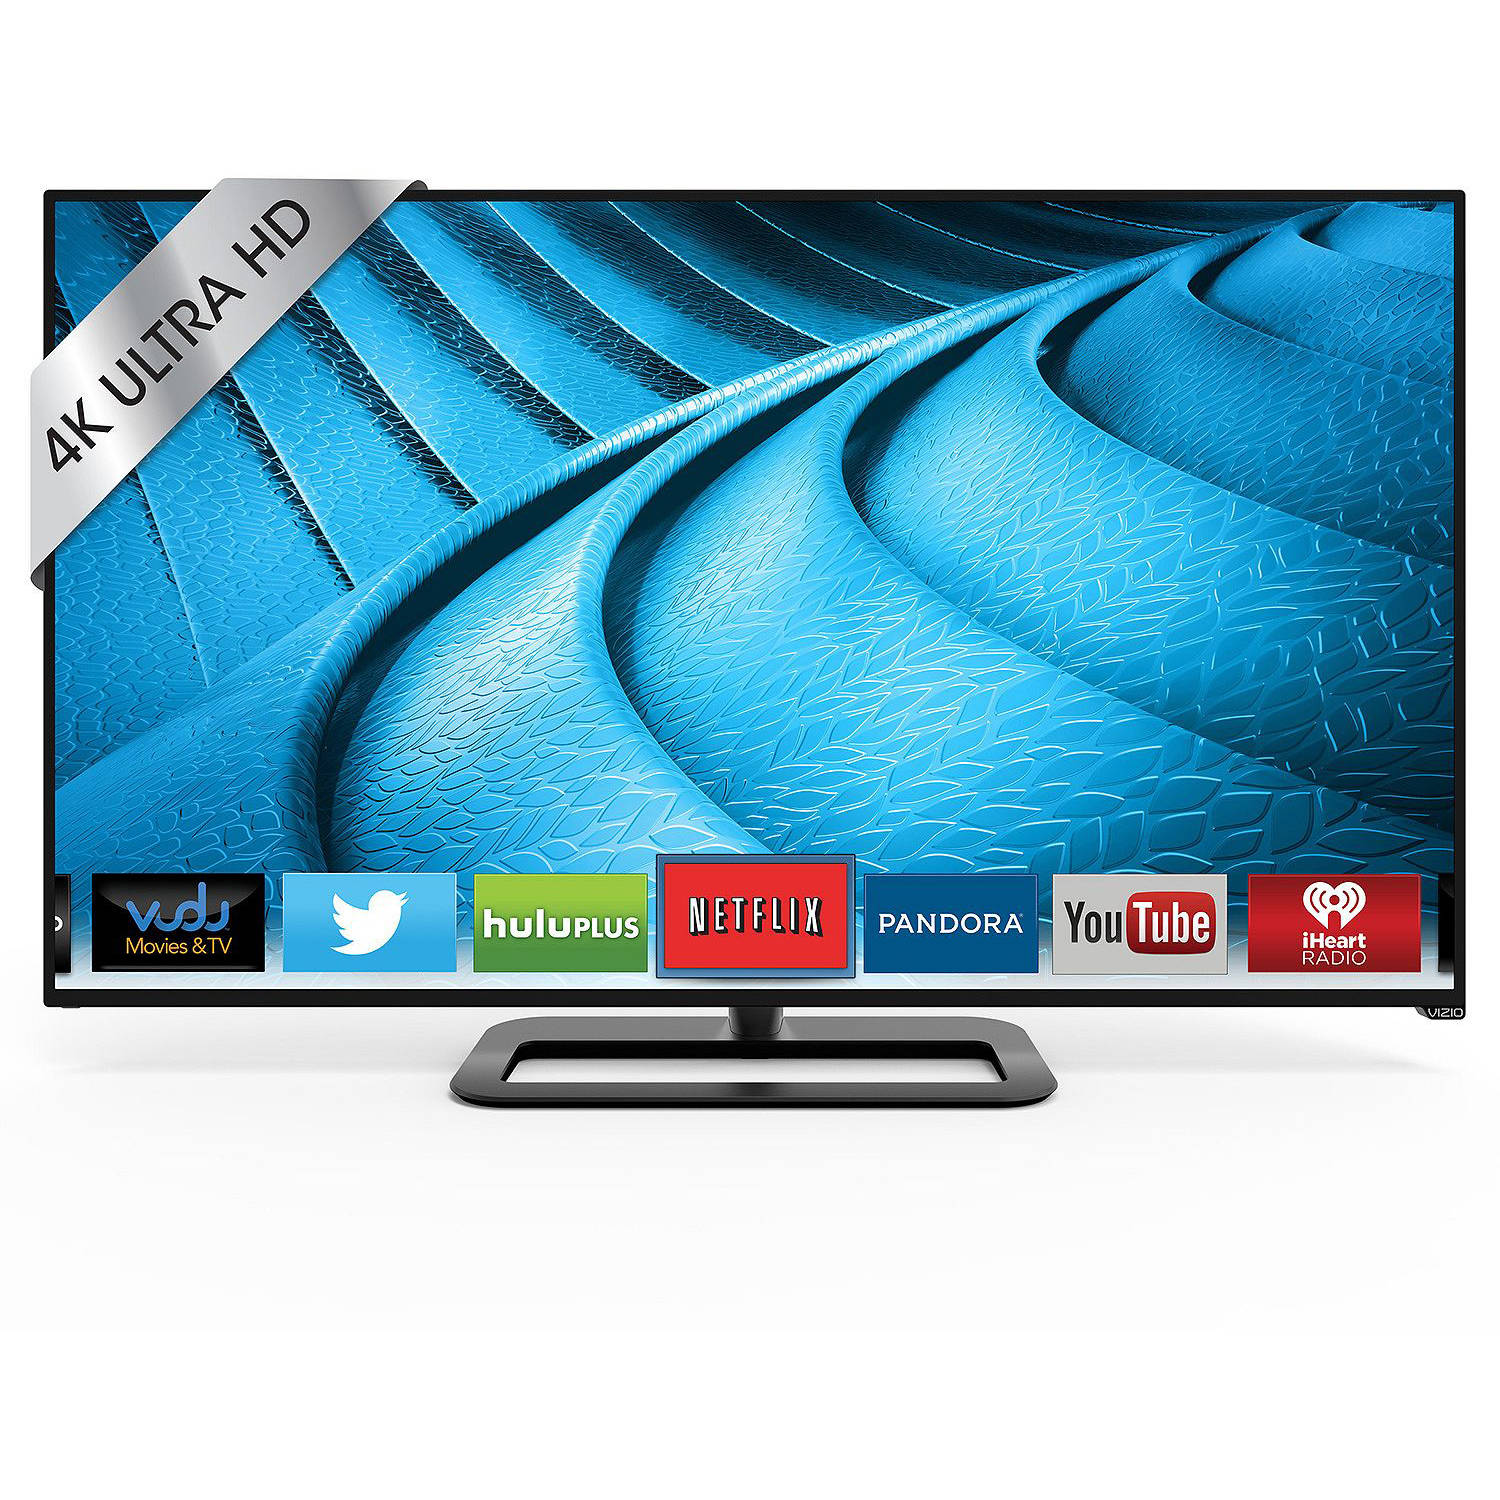 Vizio P602ui B3 60 Class P Series Led Tv Smart Tv 4k Uhd